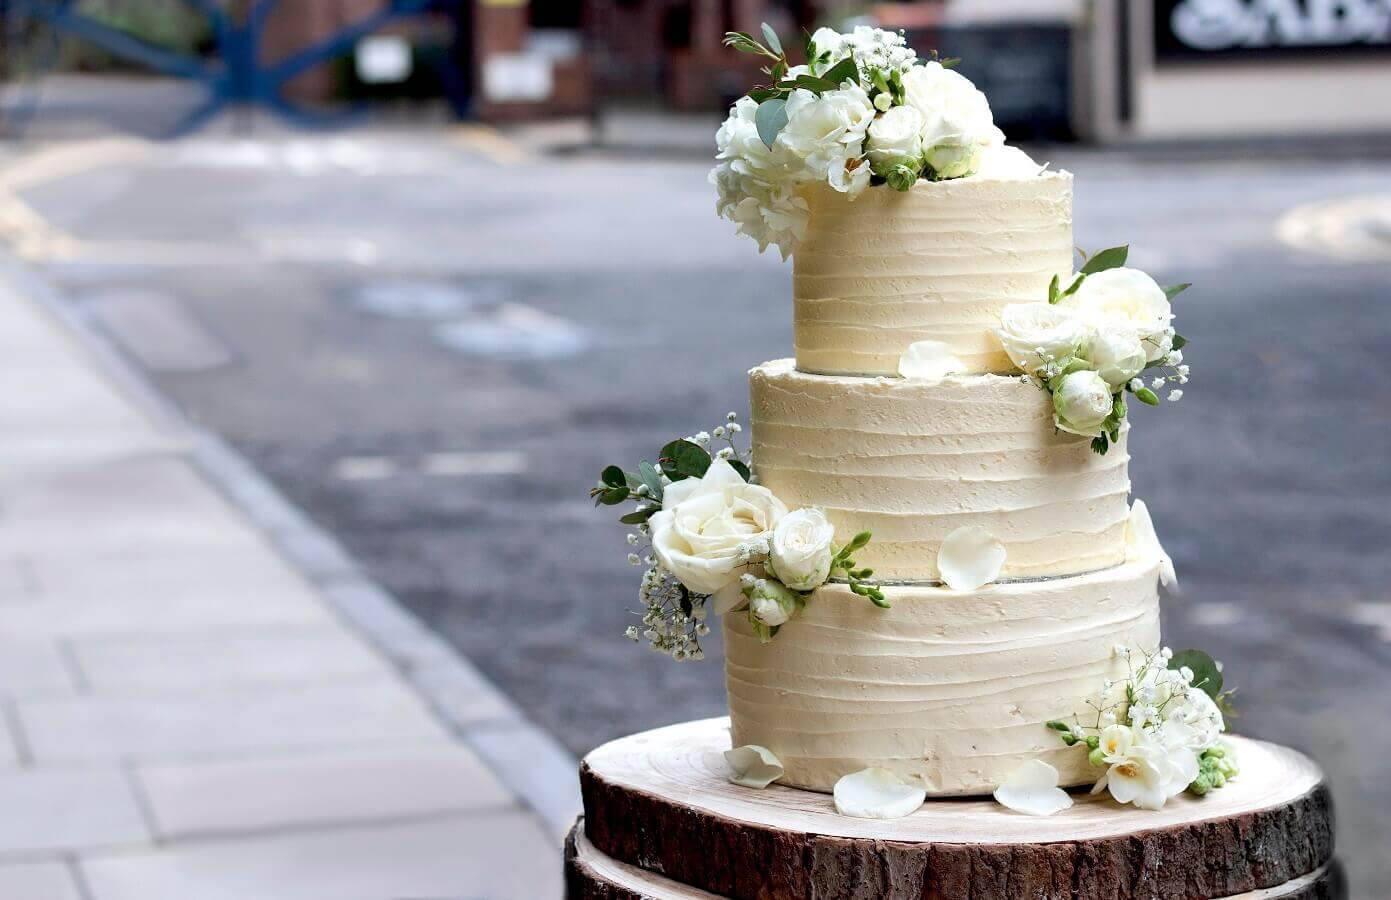 Vegan Bake-Off Winner Creates Vegan Version of the Royal Wedding Cake